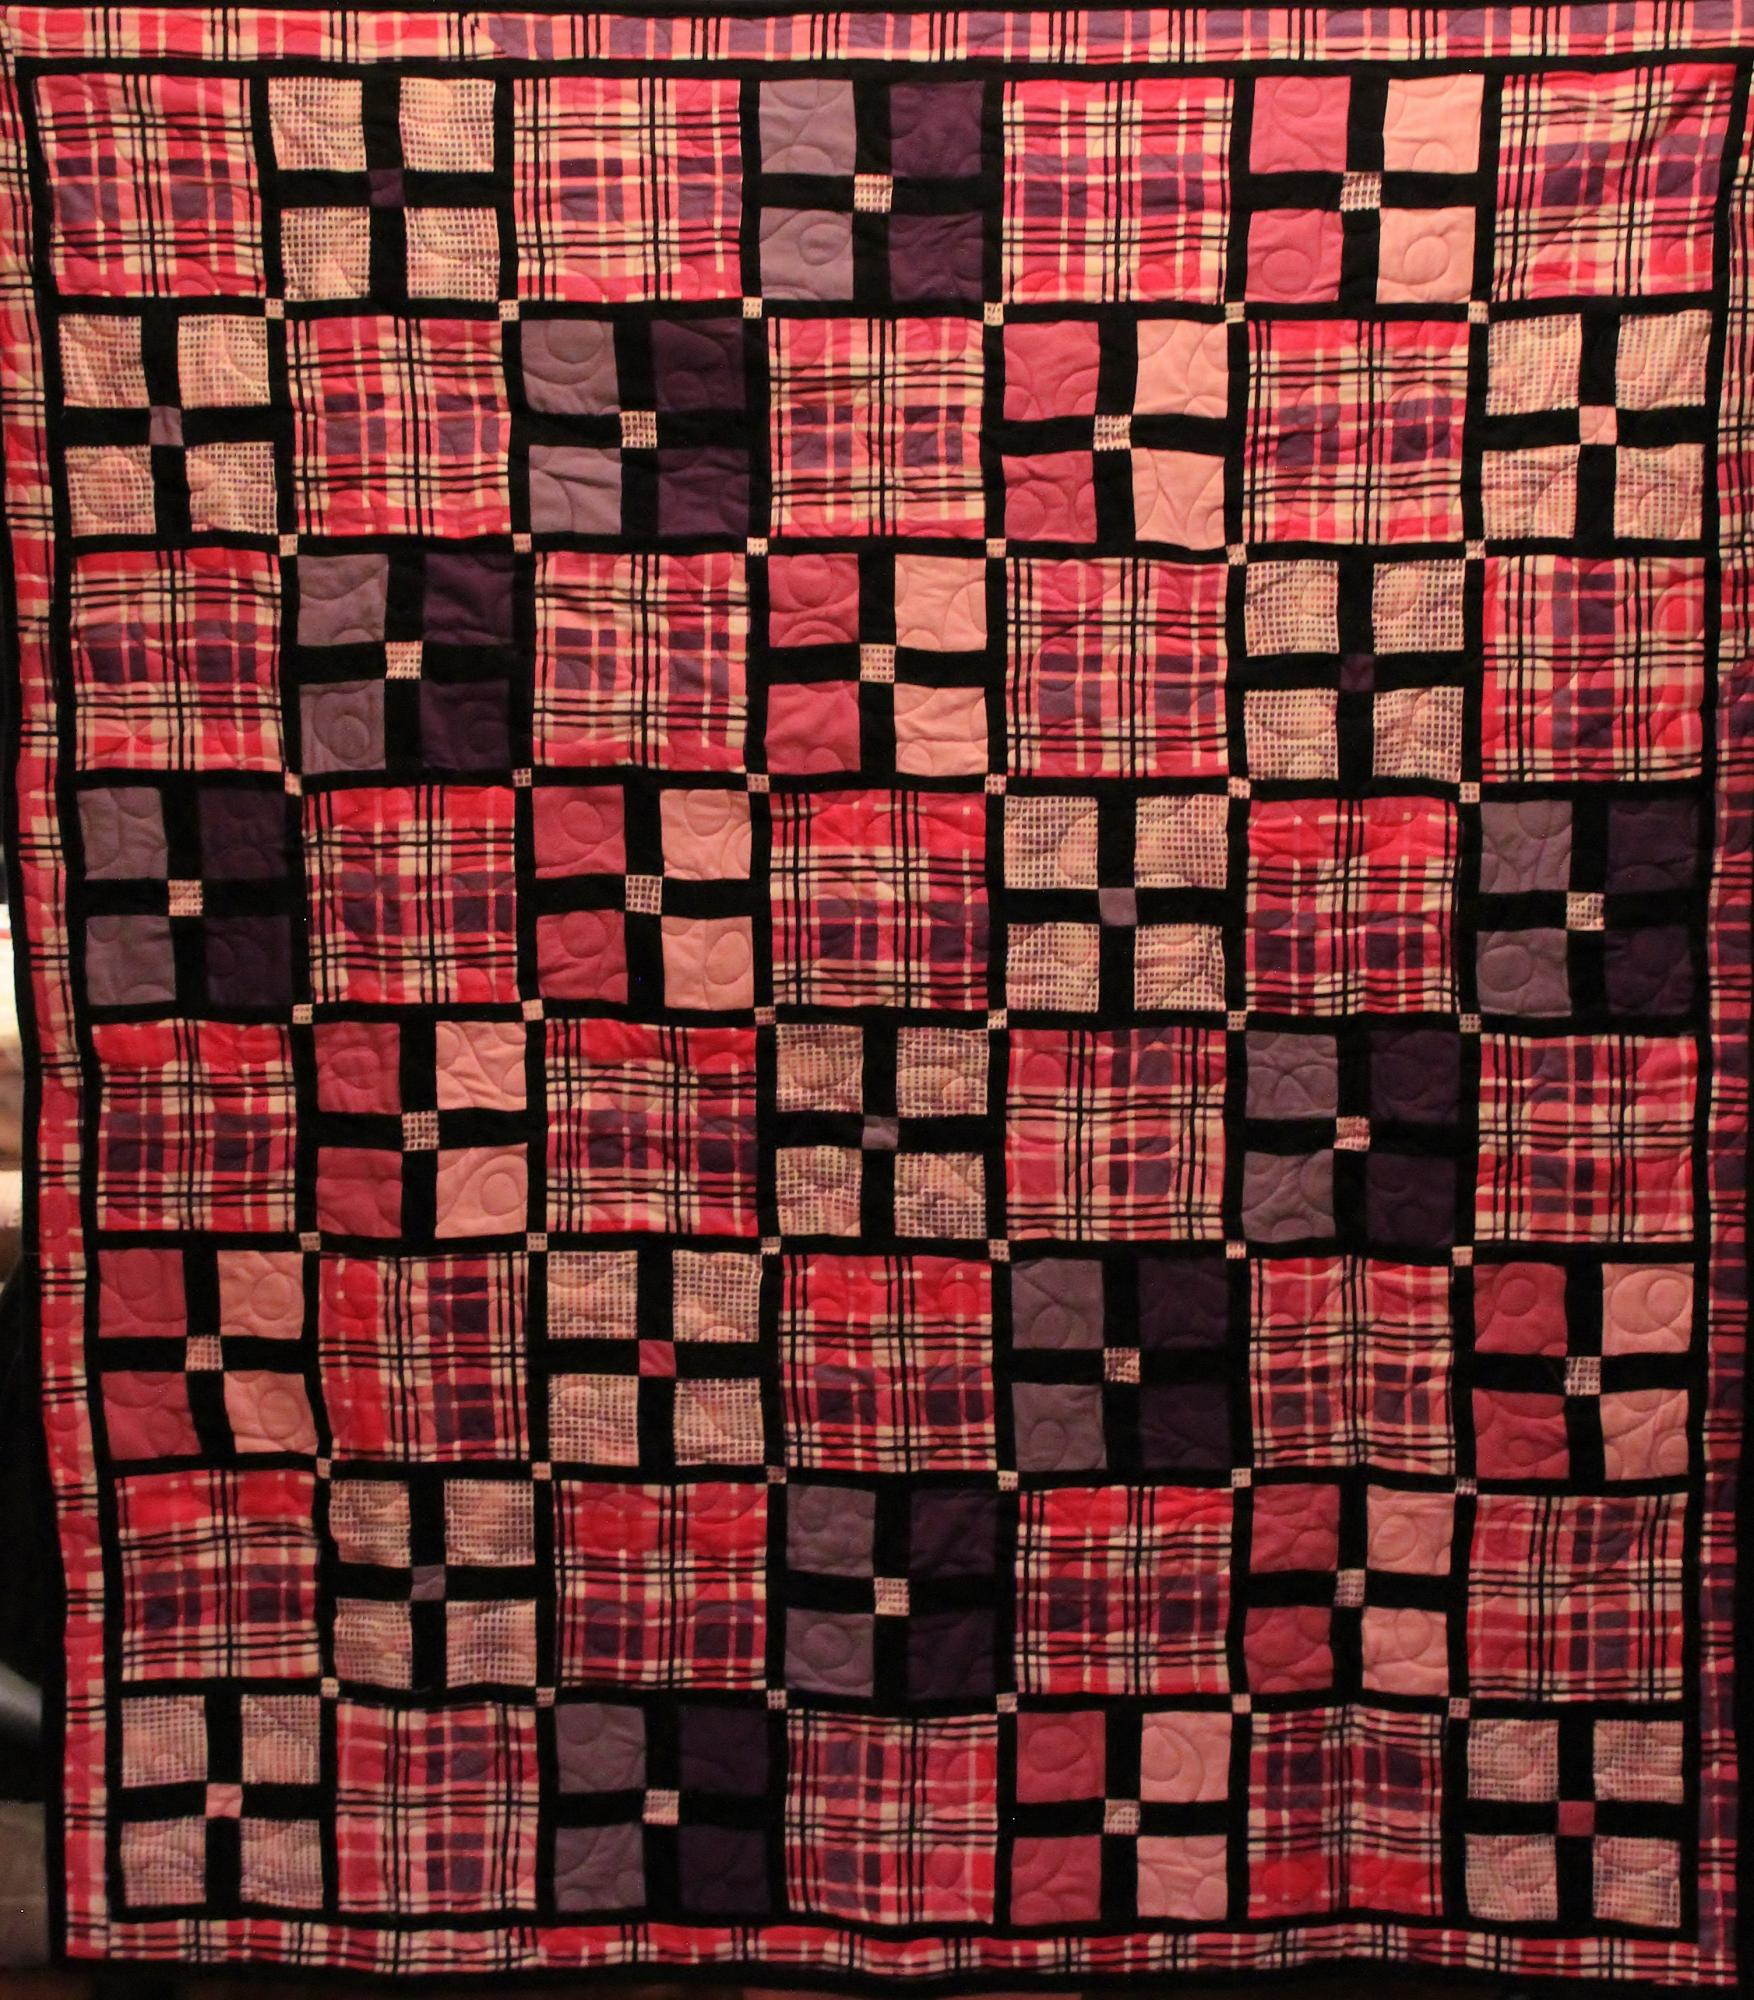 Quilt_Aution_18_Baby_-_Pretty_in_Plaid.JPG